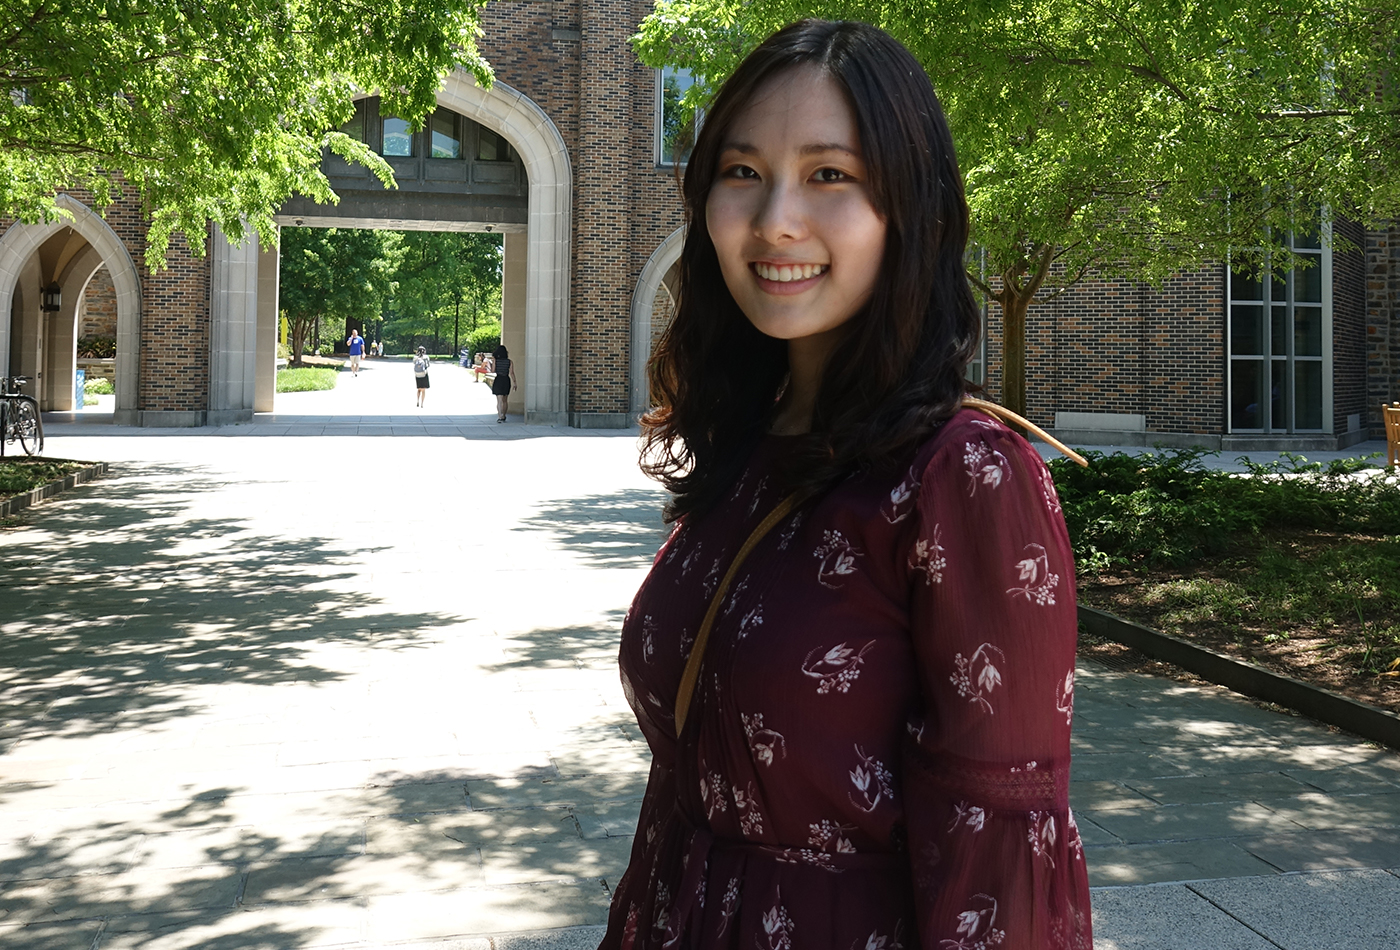 A female graduate student smiles outdoors.